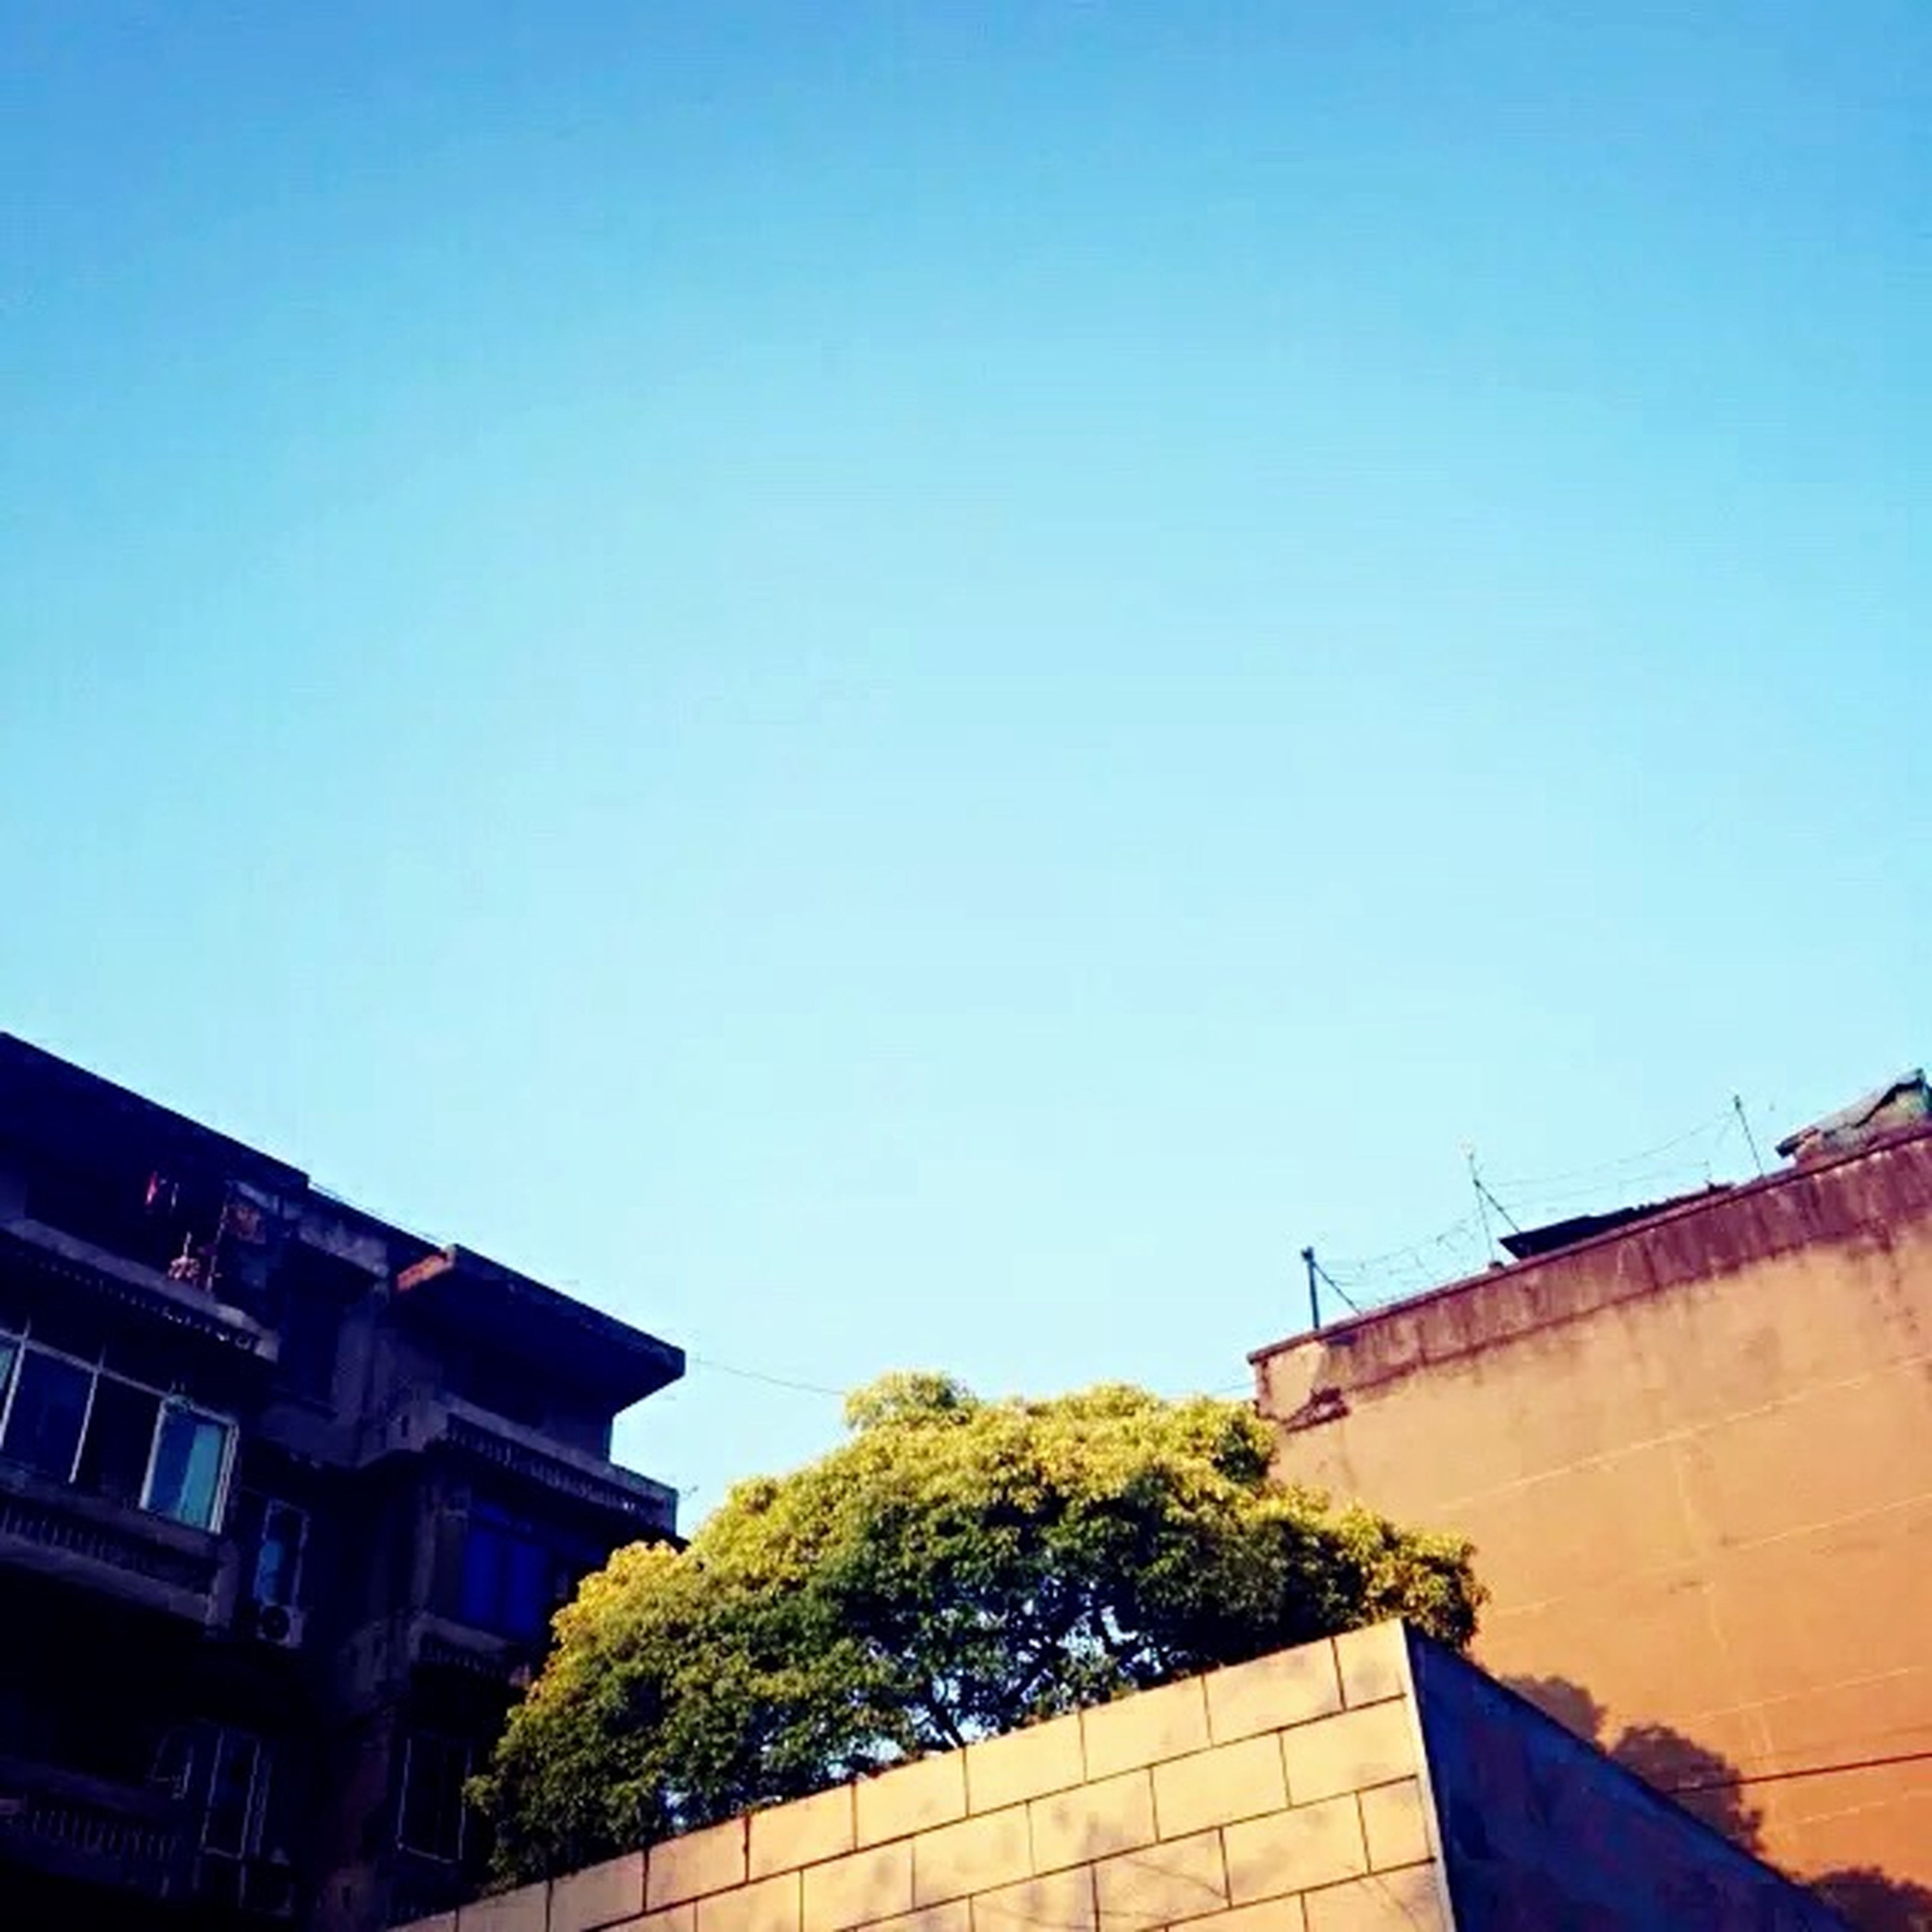 architecture, building exterior, built structure, clear sky, low angle view, copy space, residential structure, residential building, building, blue, house, city, roof, high section, outdoors, window, day, no people, residential district, exterior